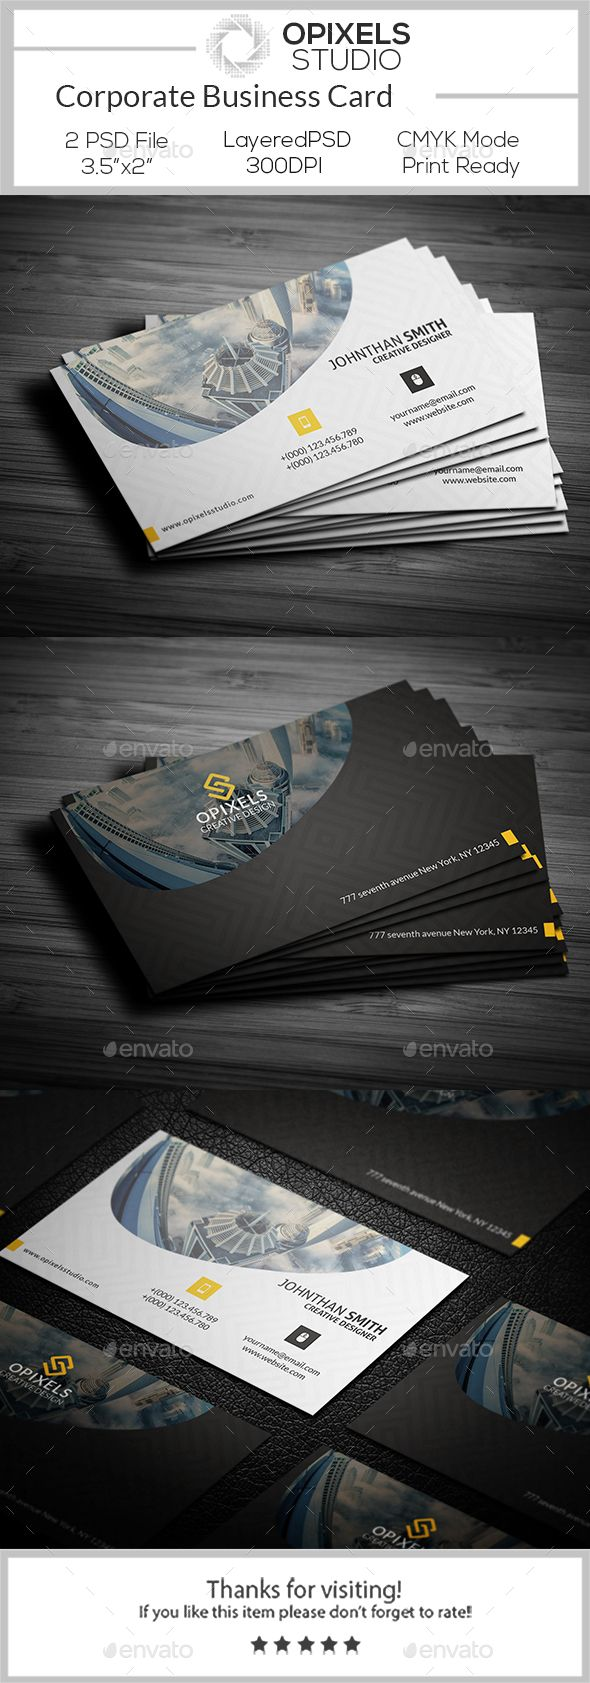 #Corporate #Business Card - Corporate Business #Cards Download here: https://graphicriver.net/item/corporate-business-card/18801989?ref=alena994